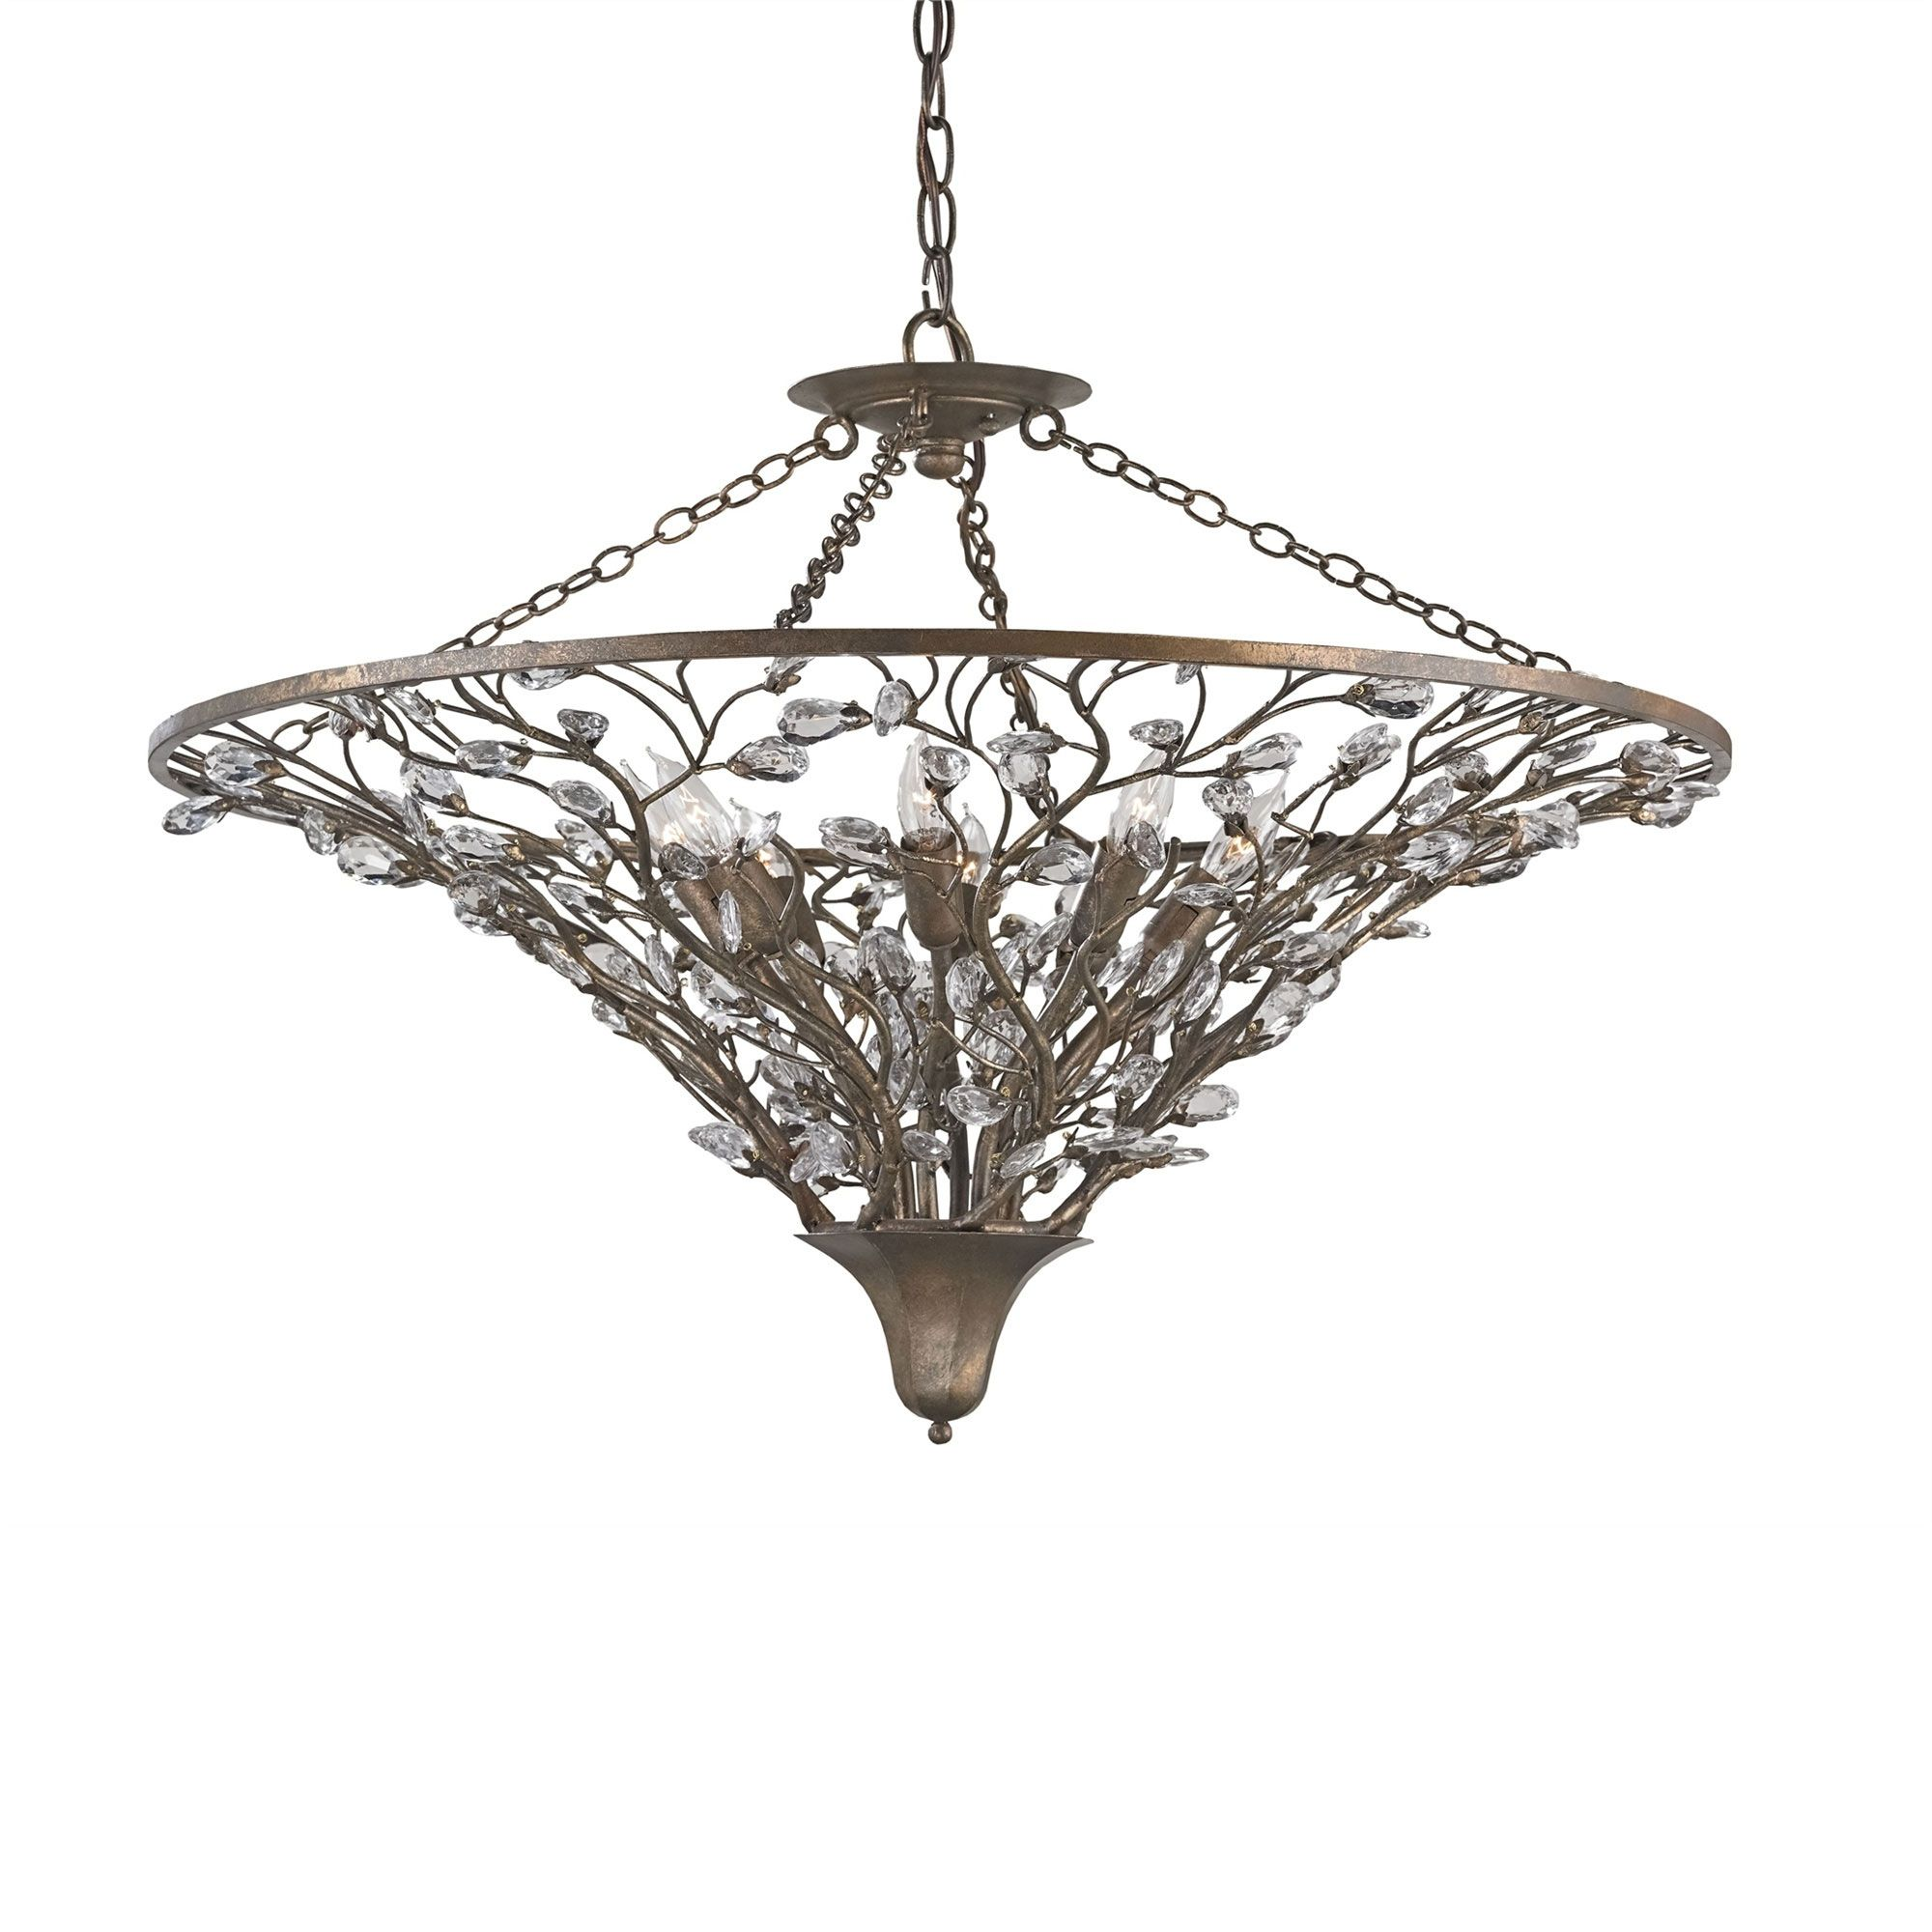 Giselle Chandelier By Currey And Company 9610 Cc Chandelier Design Chandelier Decor Large Foyer Chandeliers